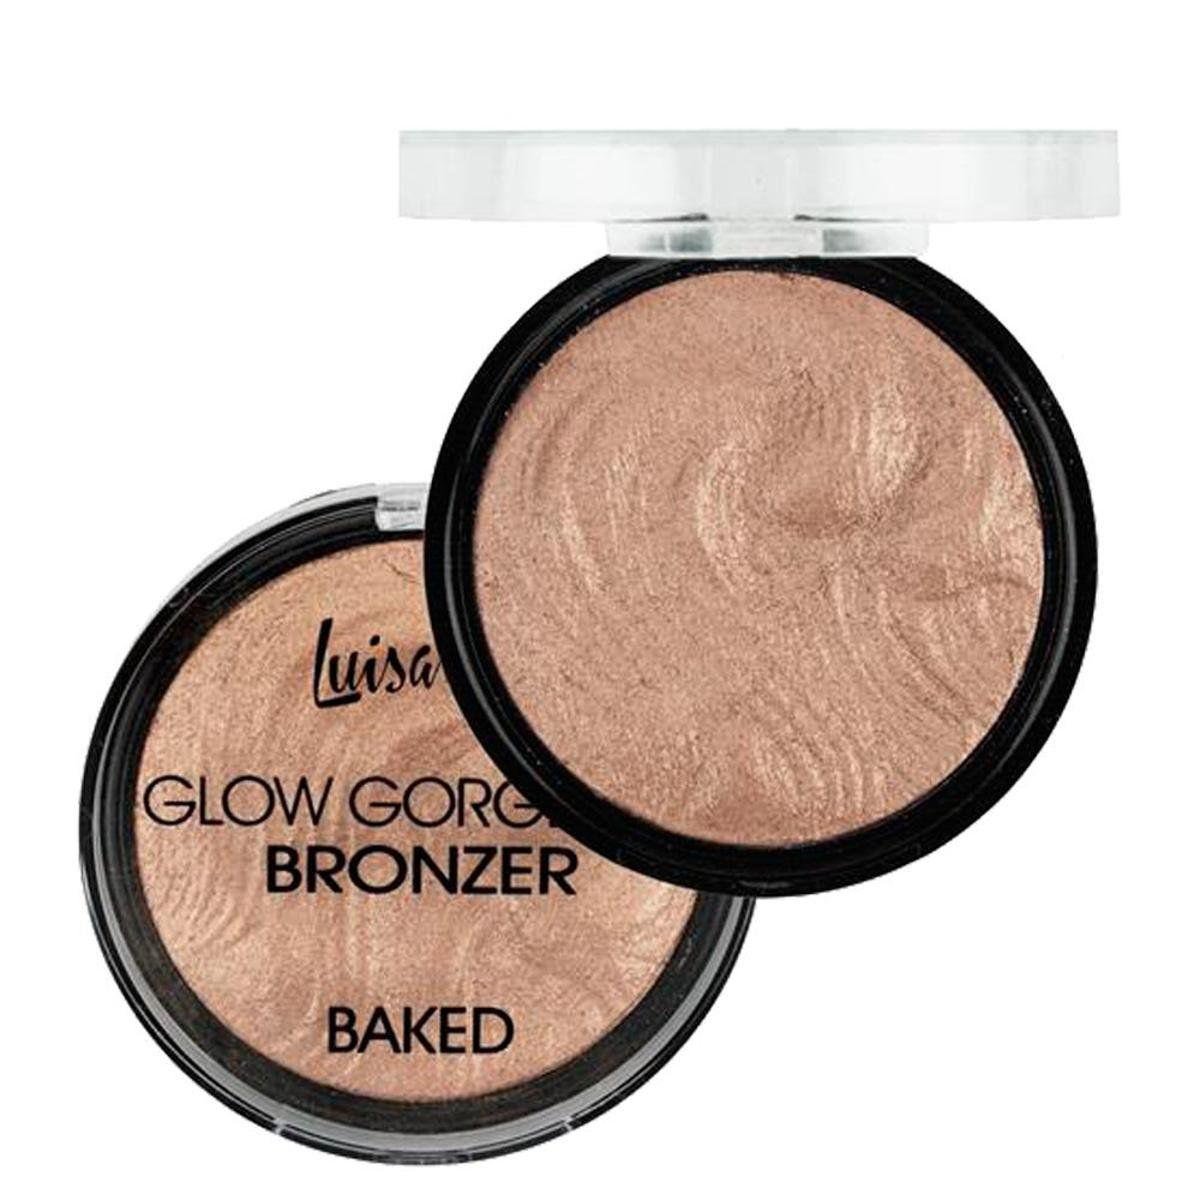 Glow Gorgeous Bronzer Baked  cor A